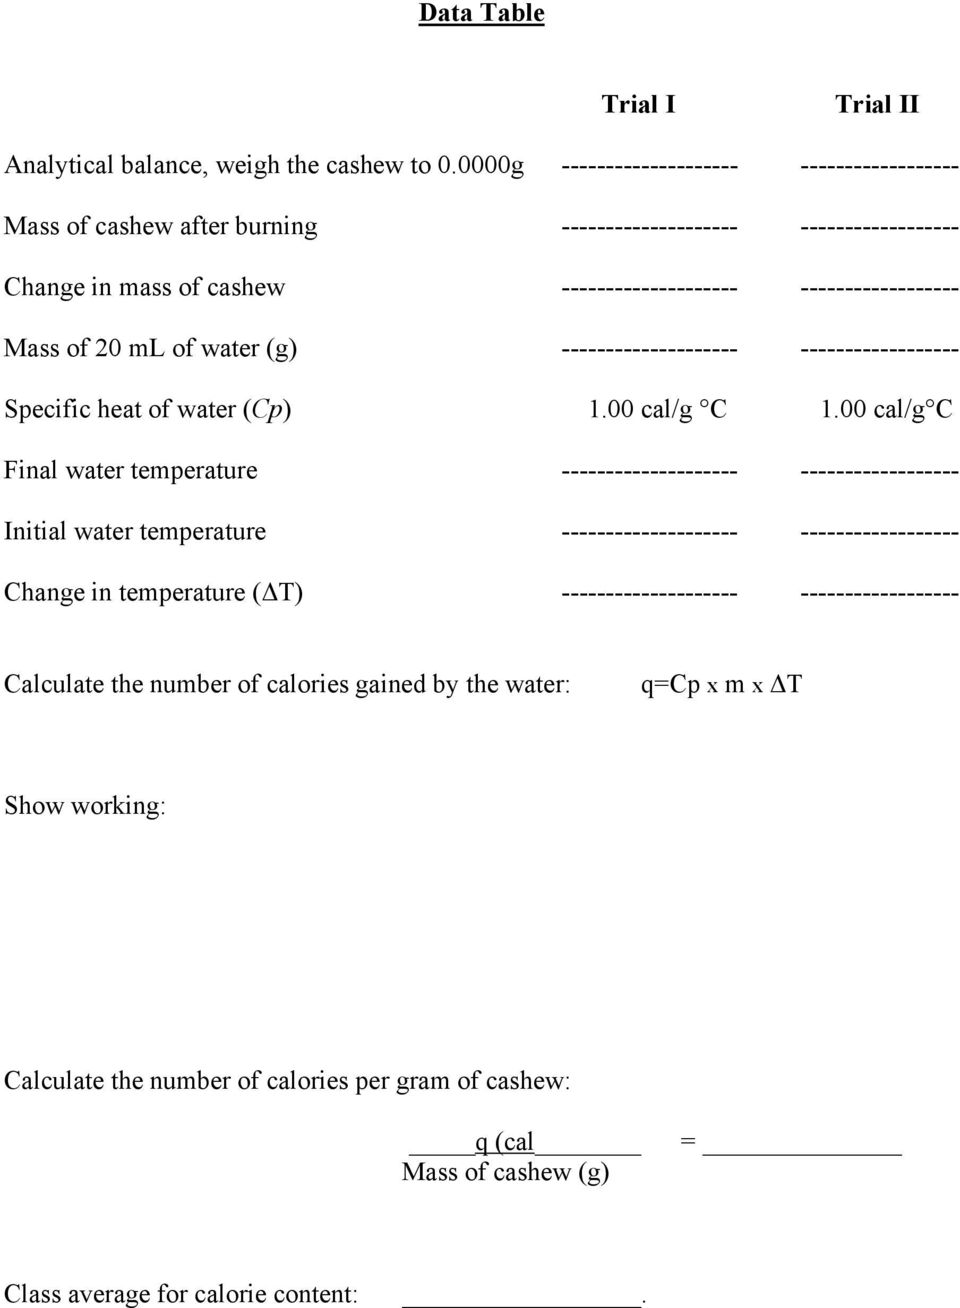 ml of water (g) -------------------- ------------------ Specific heat of water (Cp) 1.00 cal/g C 1.